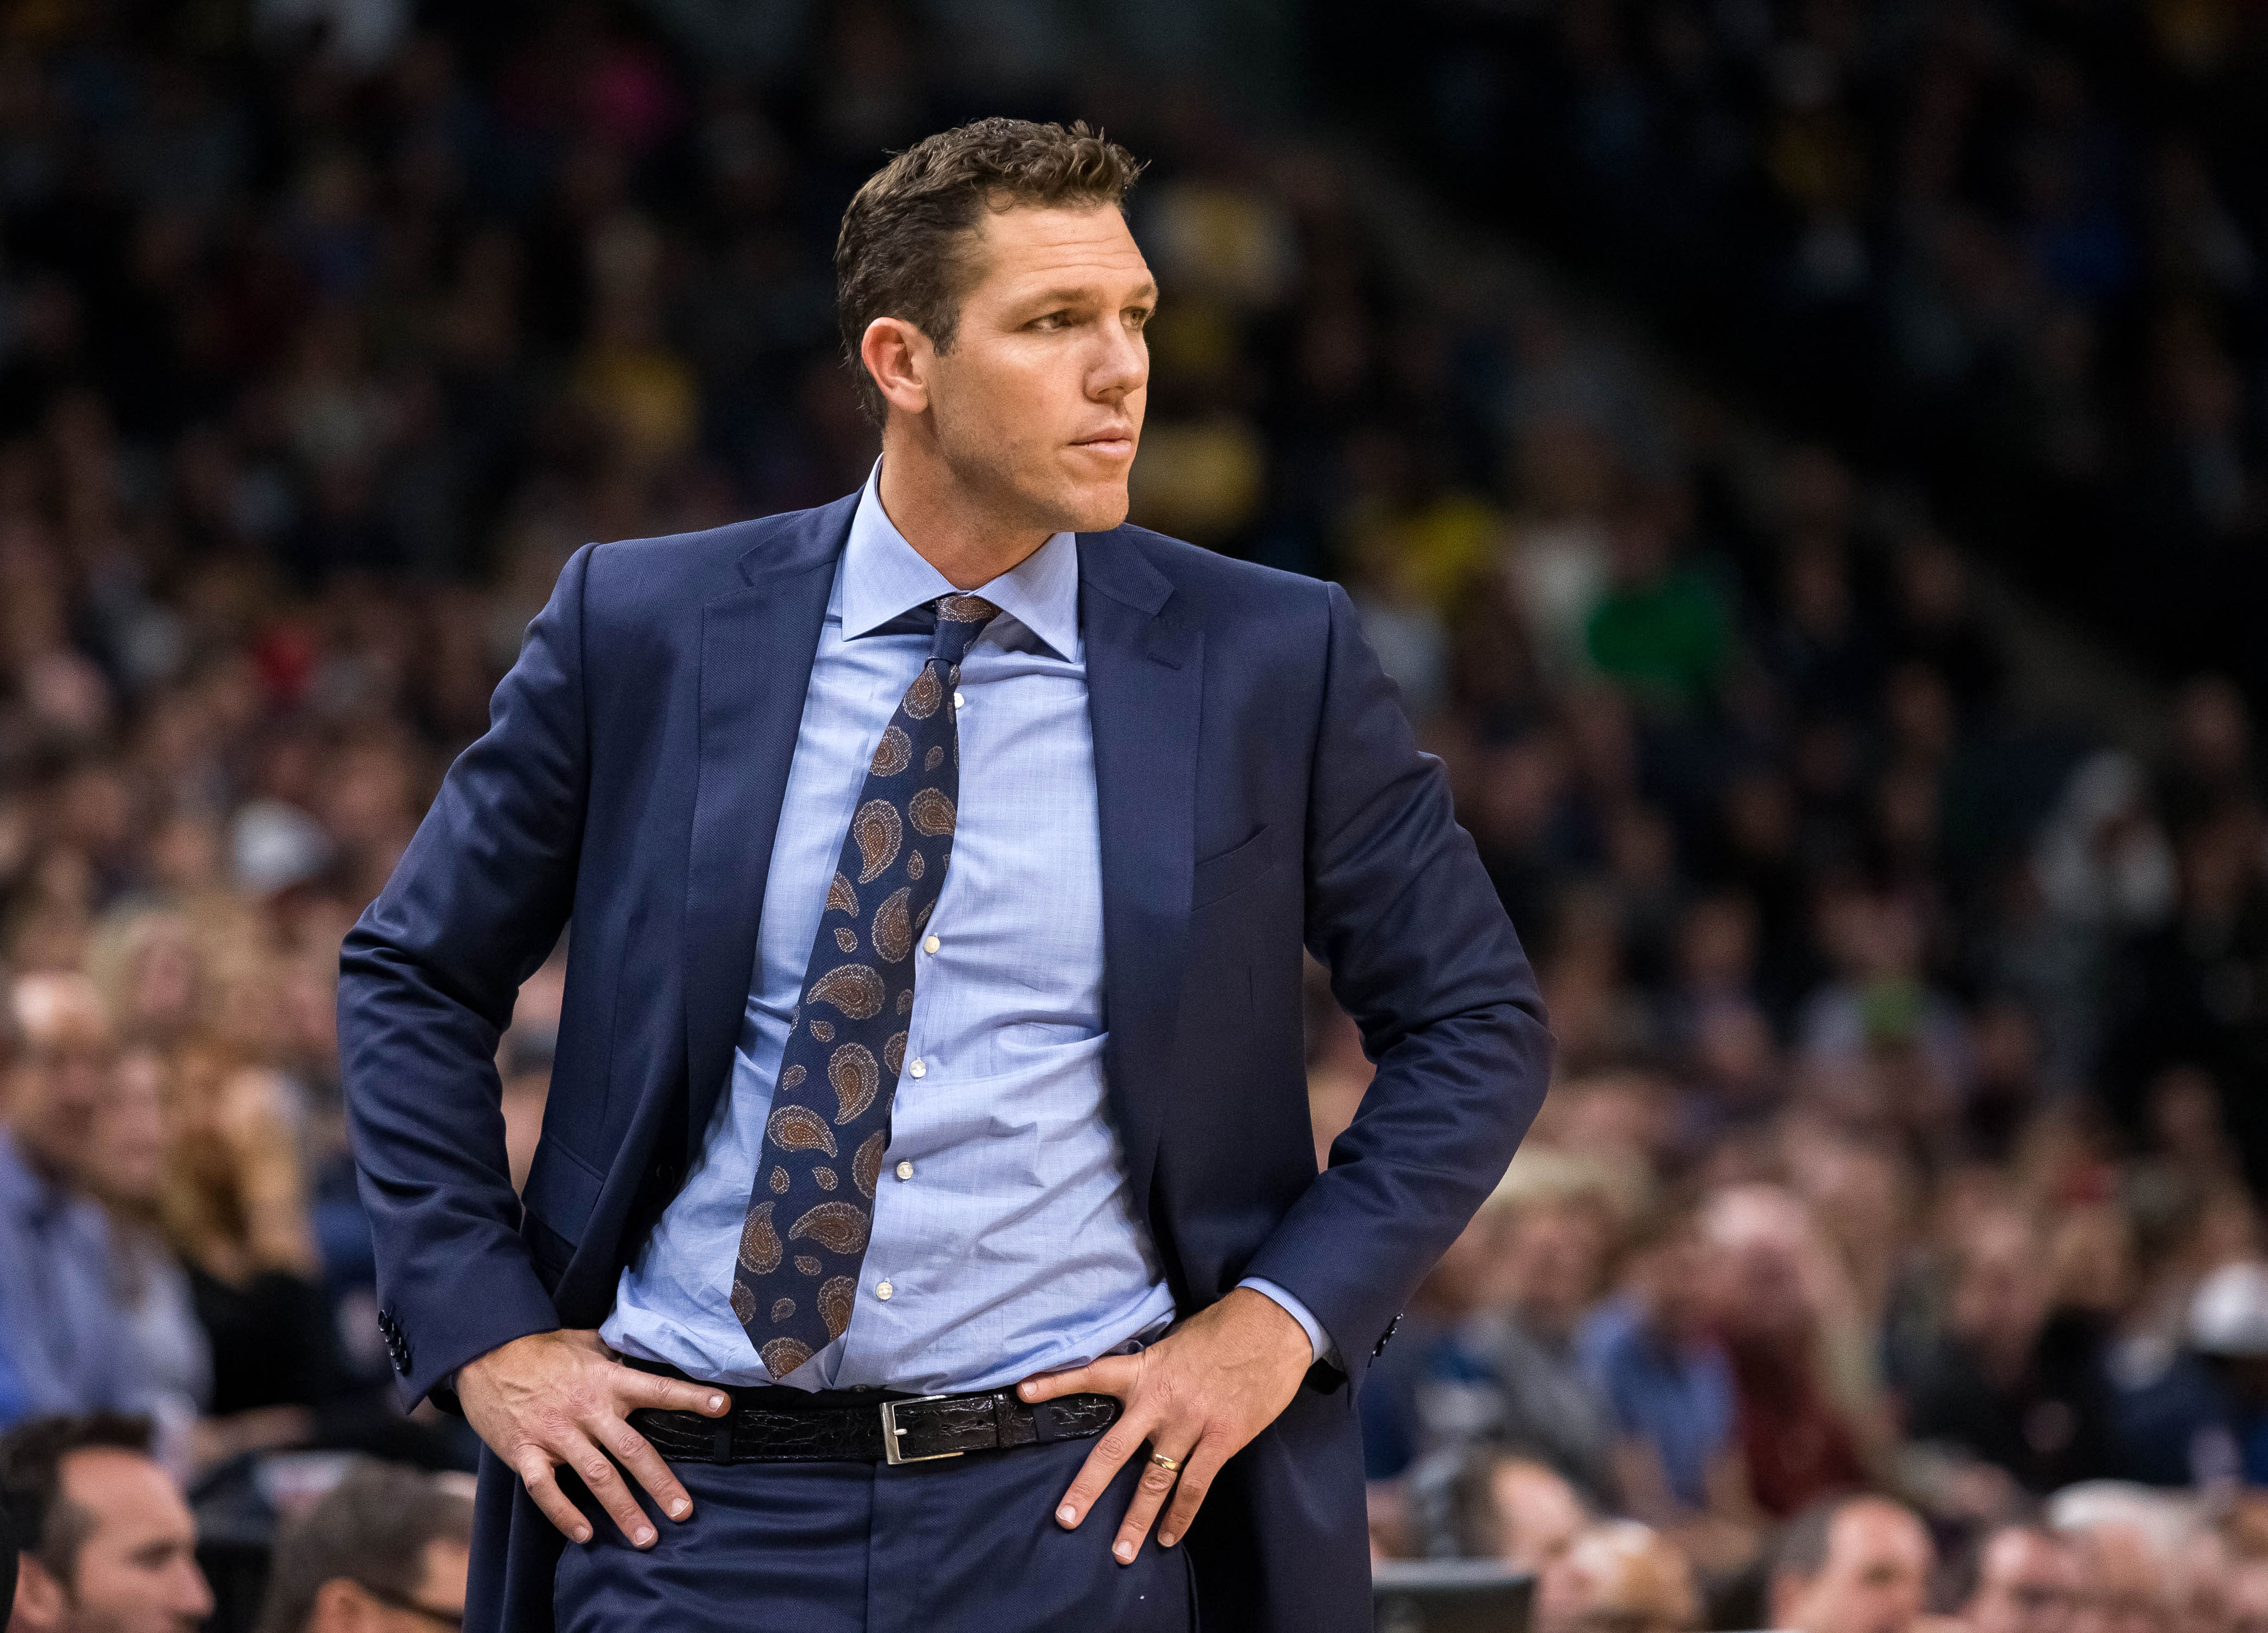 Luke Walton says he has 'a great relationship' with Lakers